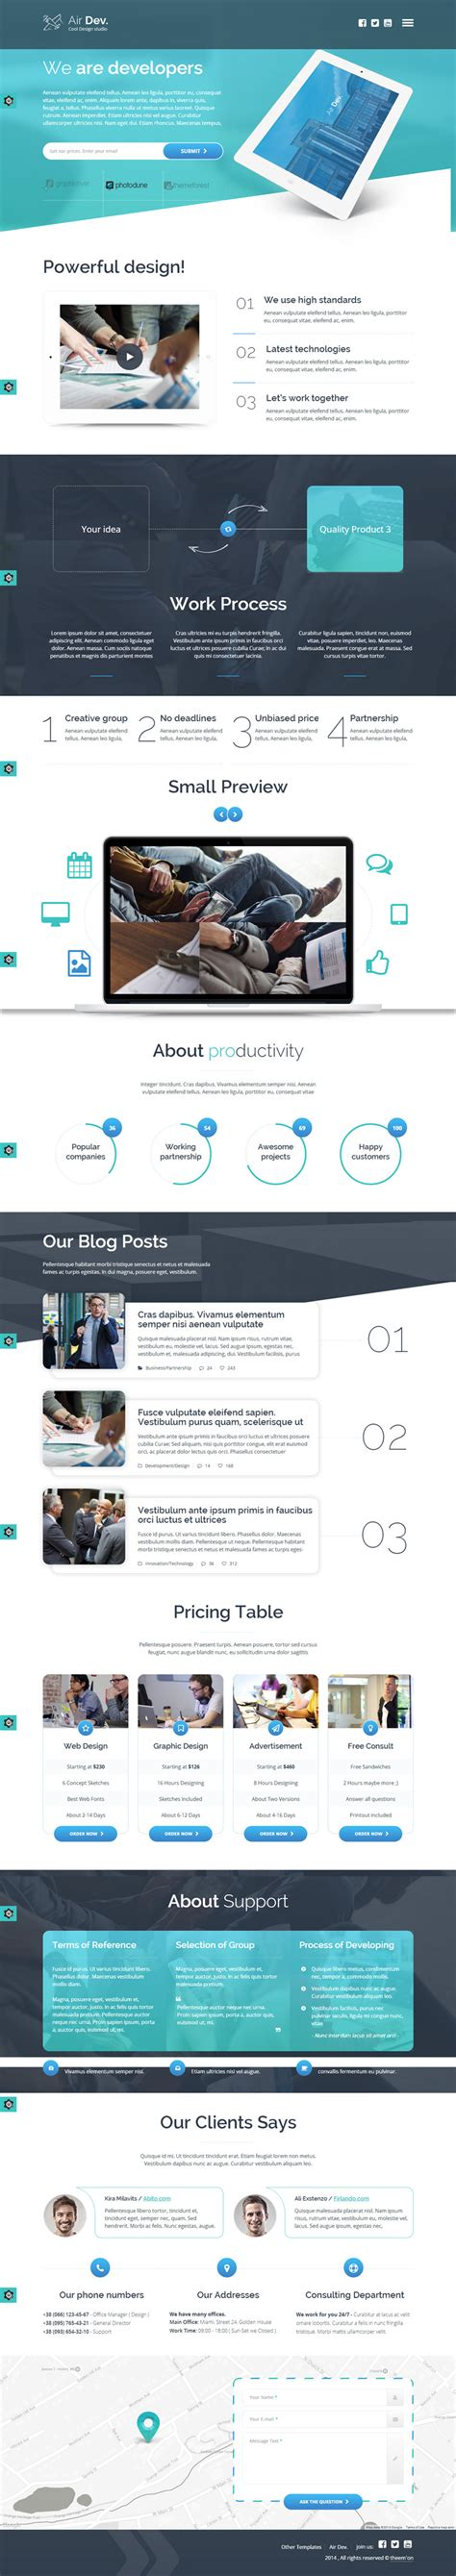 parallax website template one page parallax website template air dev html template